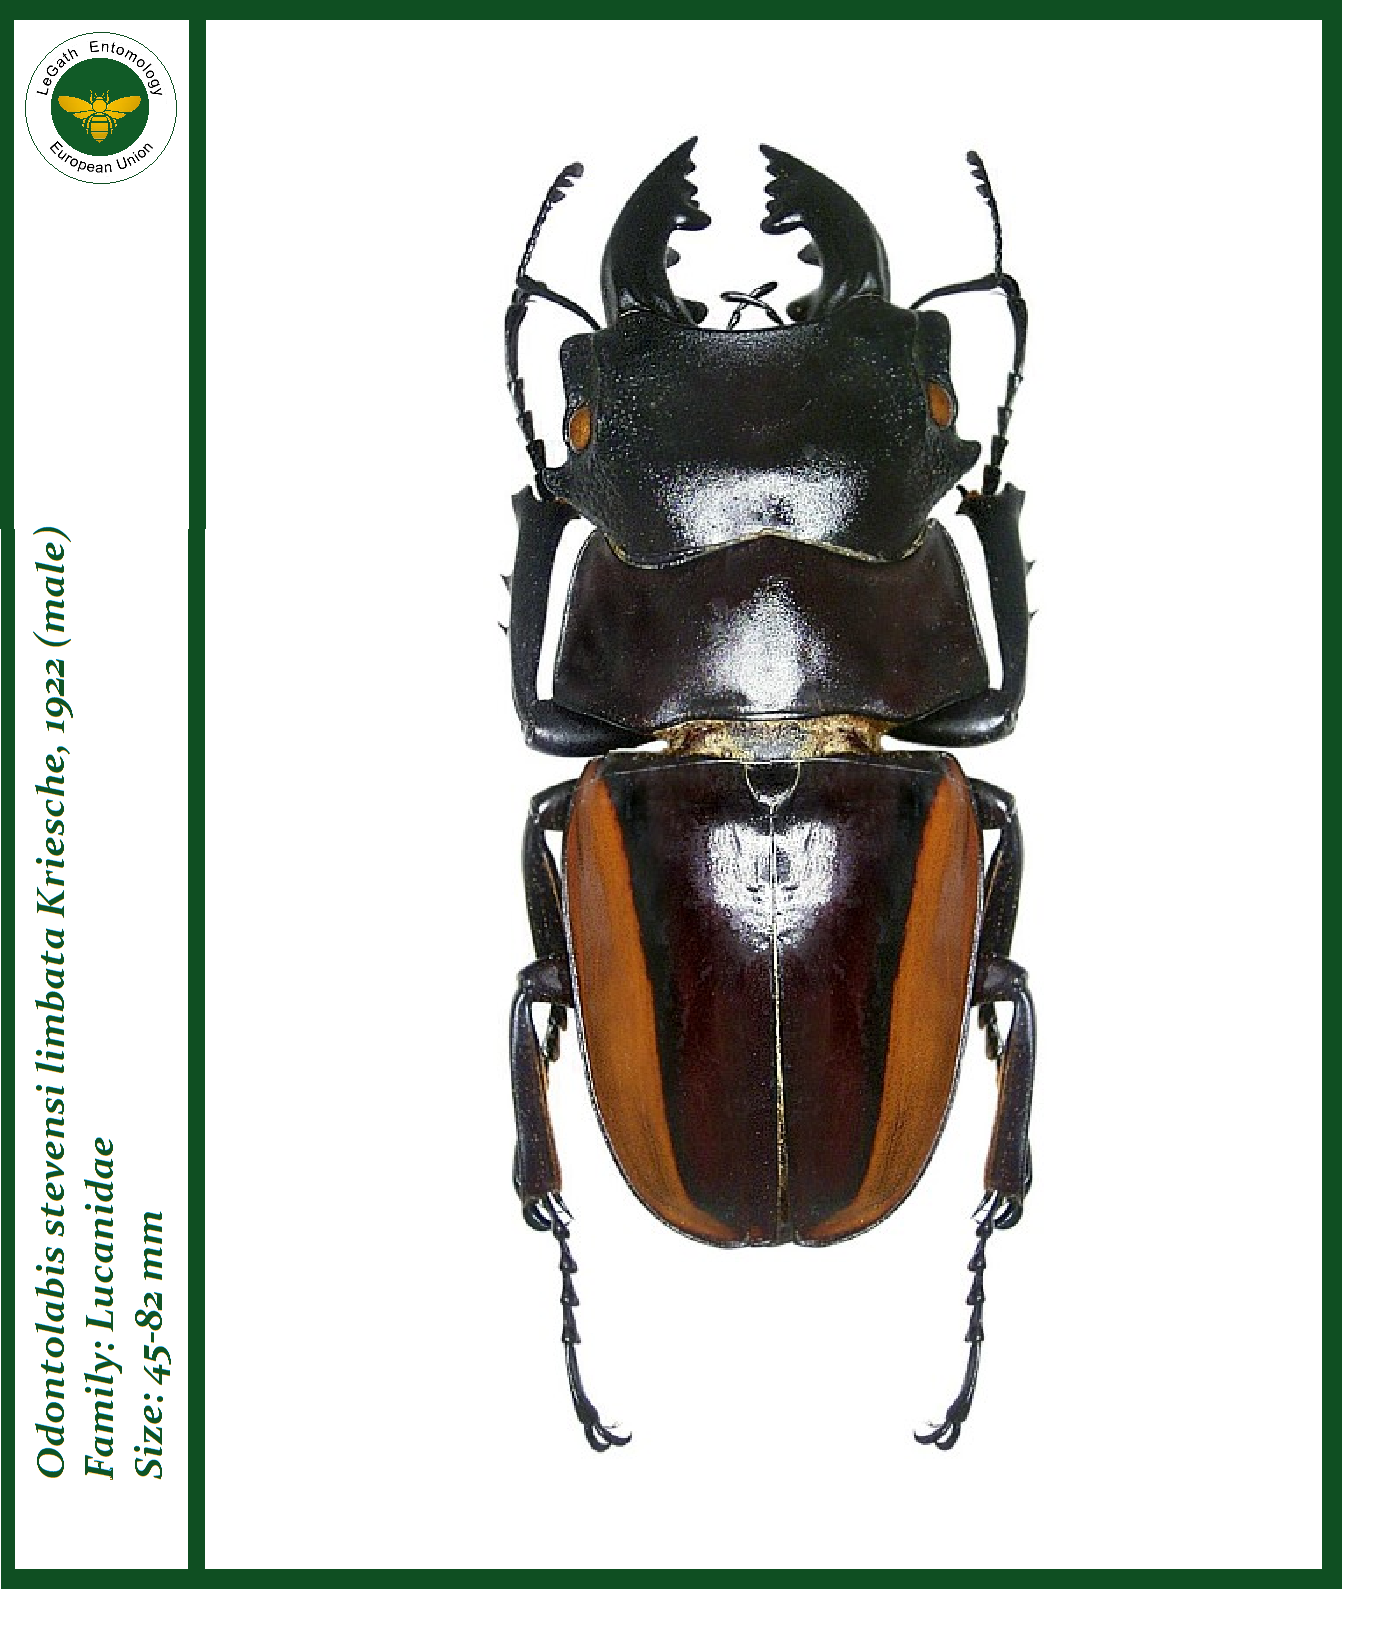 Prosopocoilus zebra beetle photo